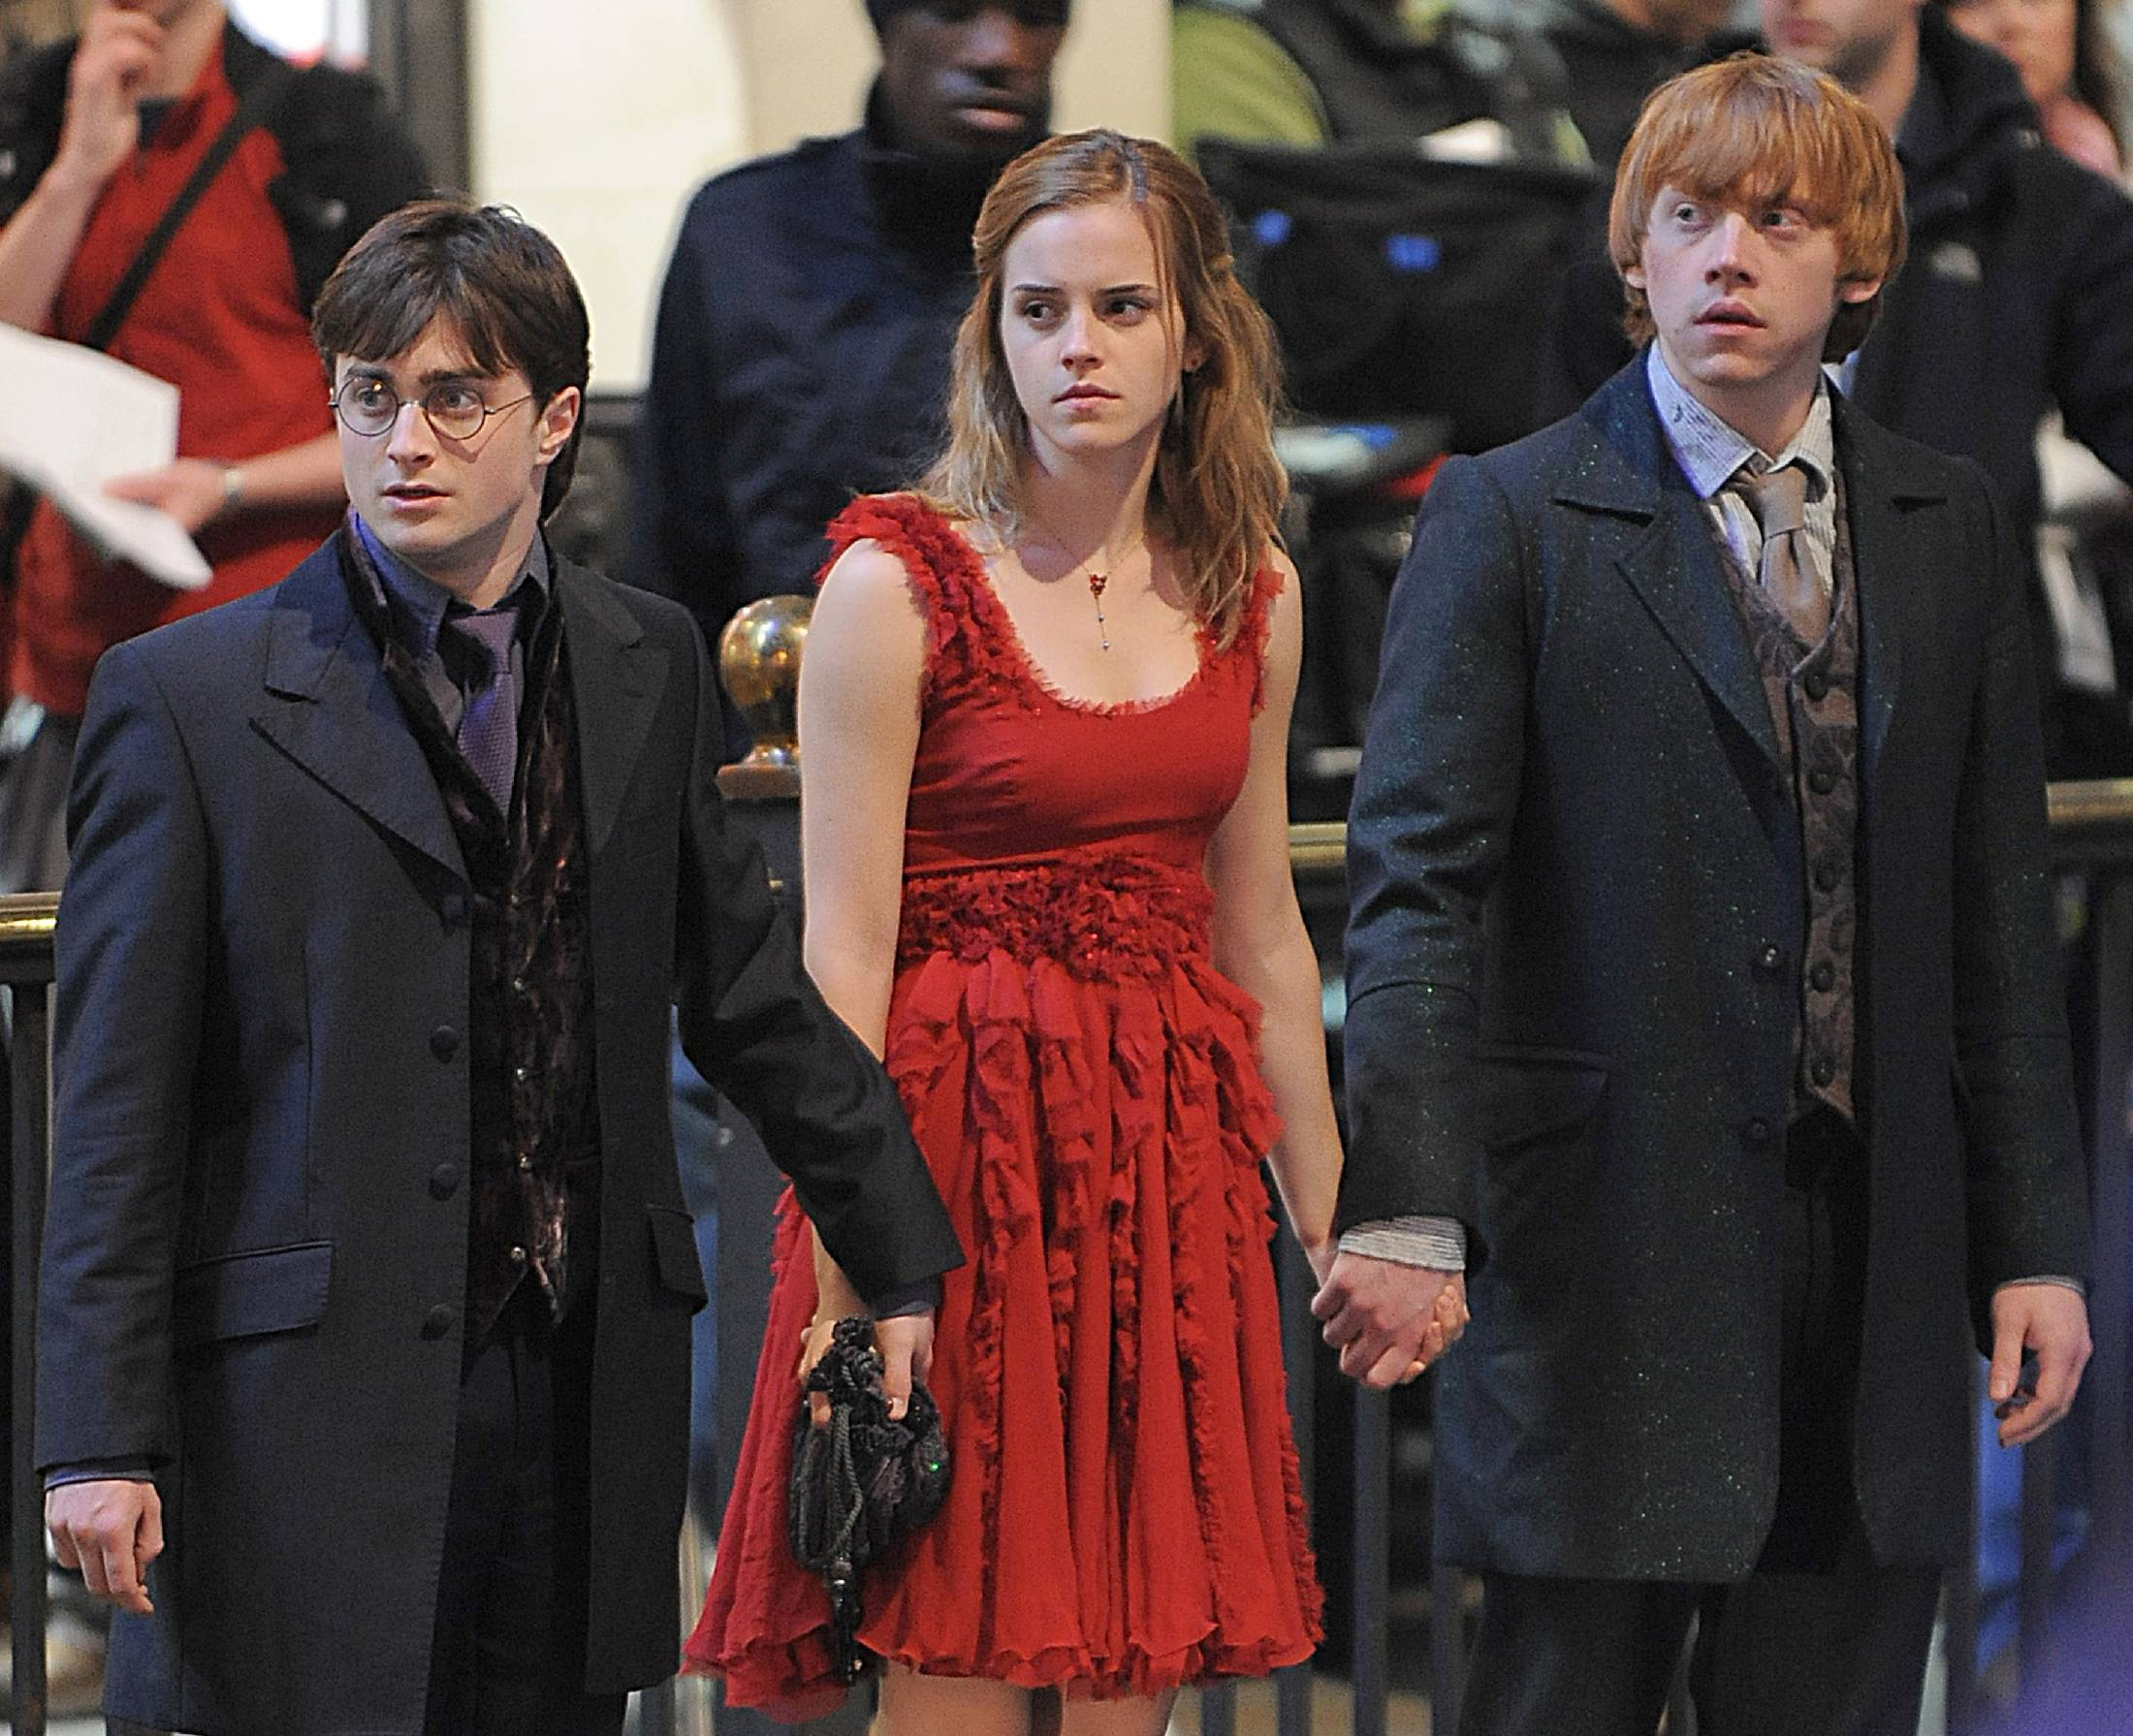 Harry Potter Storms The Box Office